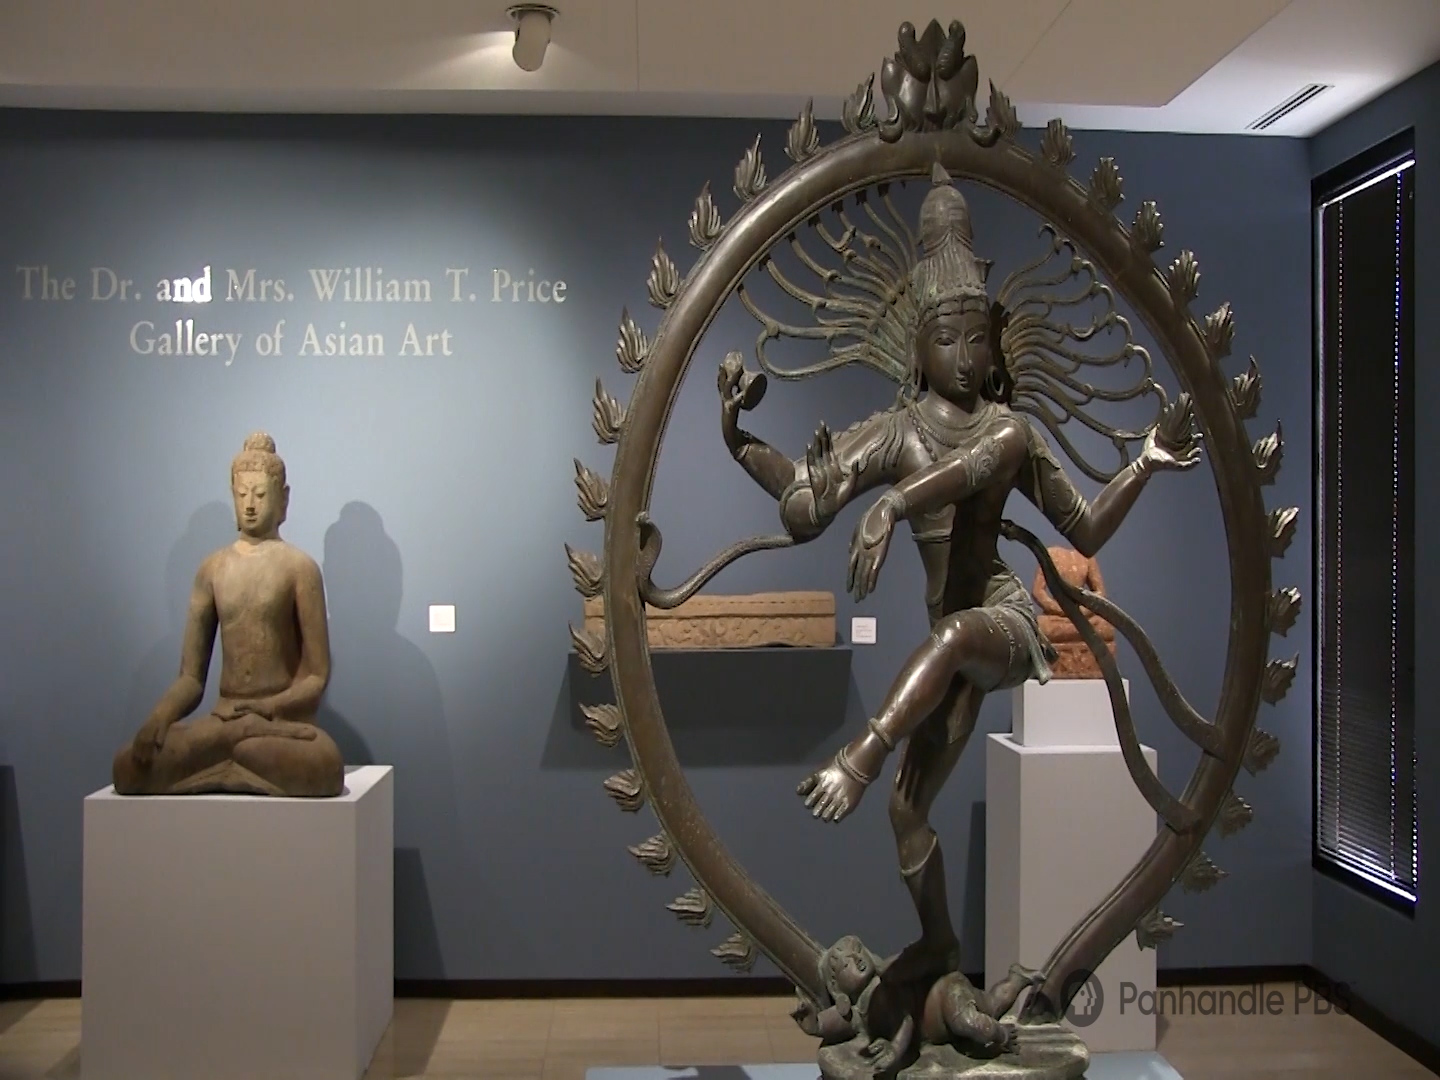 The Handle: Price Collection of Asian Art